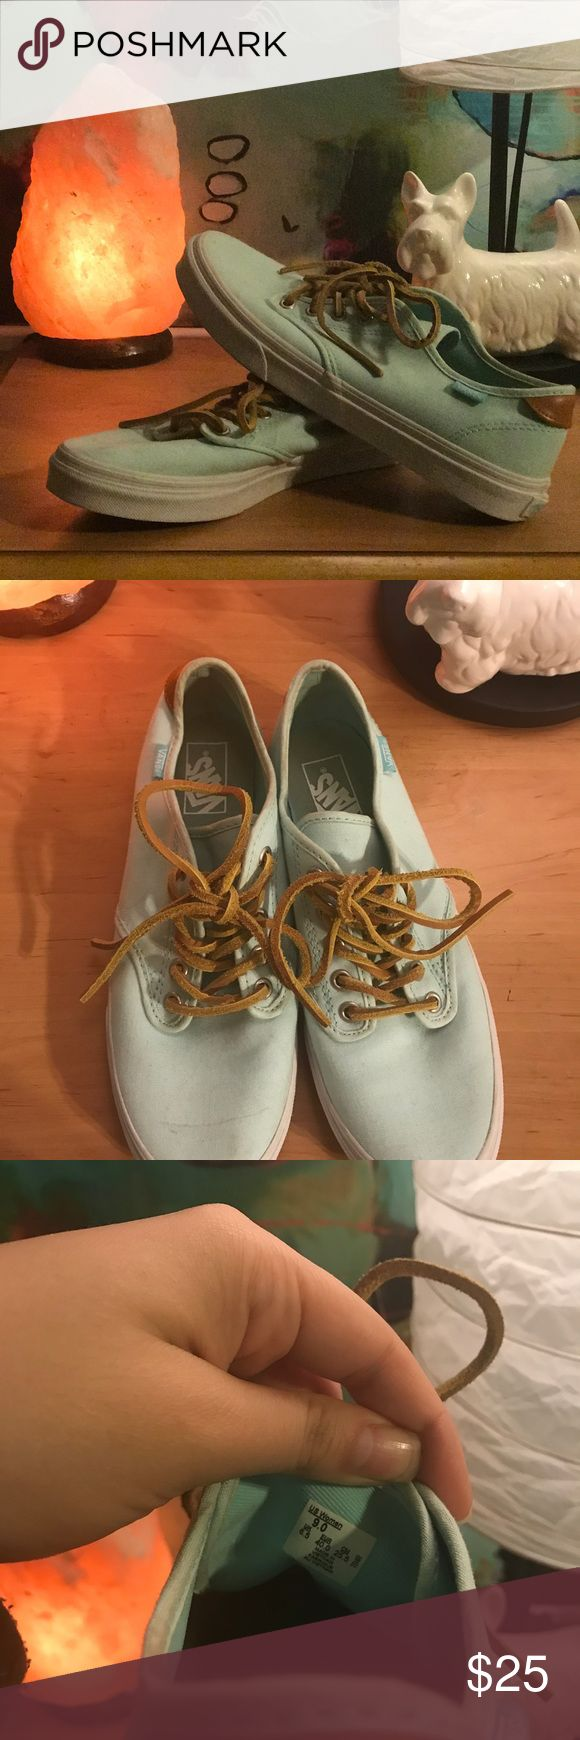 Mint Green Vans with Leather Laces Canvas vans, only worn once. Slight mark on right shoe (pictured) but could most likely be washed out. Super cute! Vans Shoes Sneakers